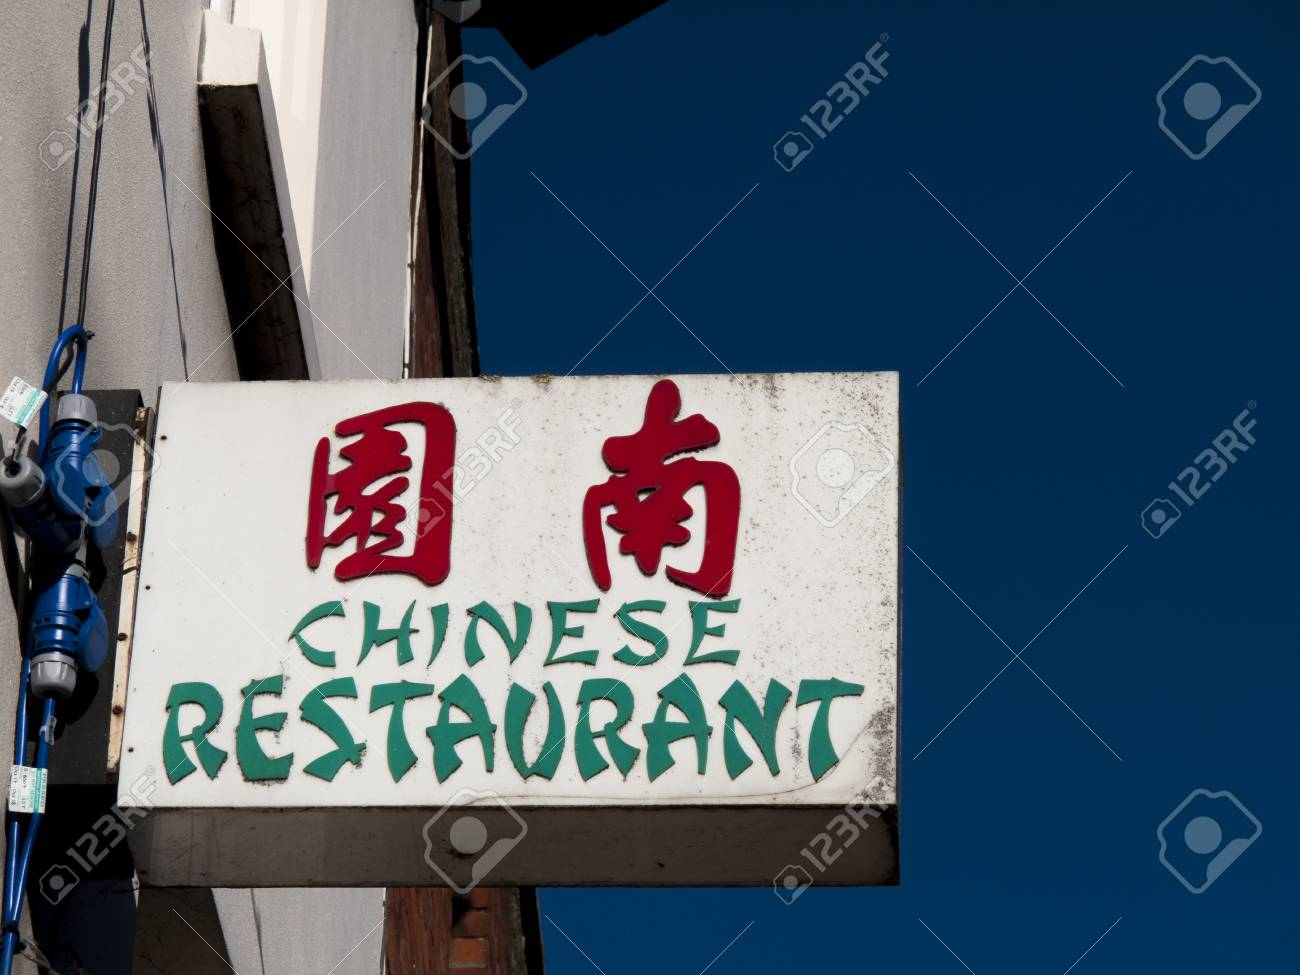 Chinese Restaurant And Takeaway Sign Over Premises Stock Photo Picture And Royalty Free Image Image 91642719